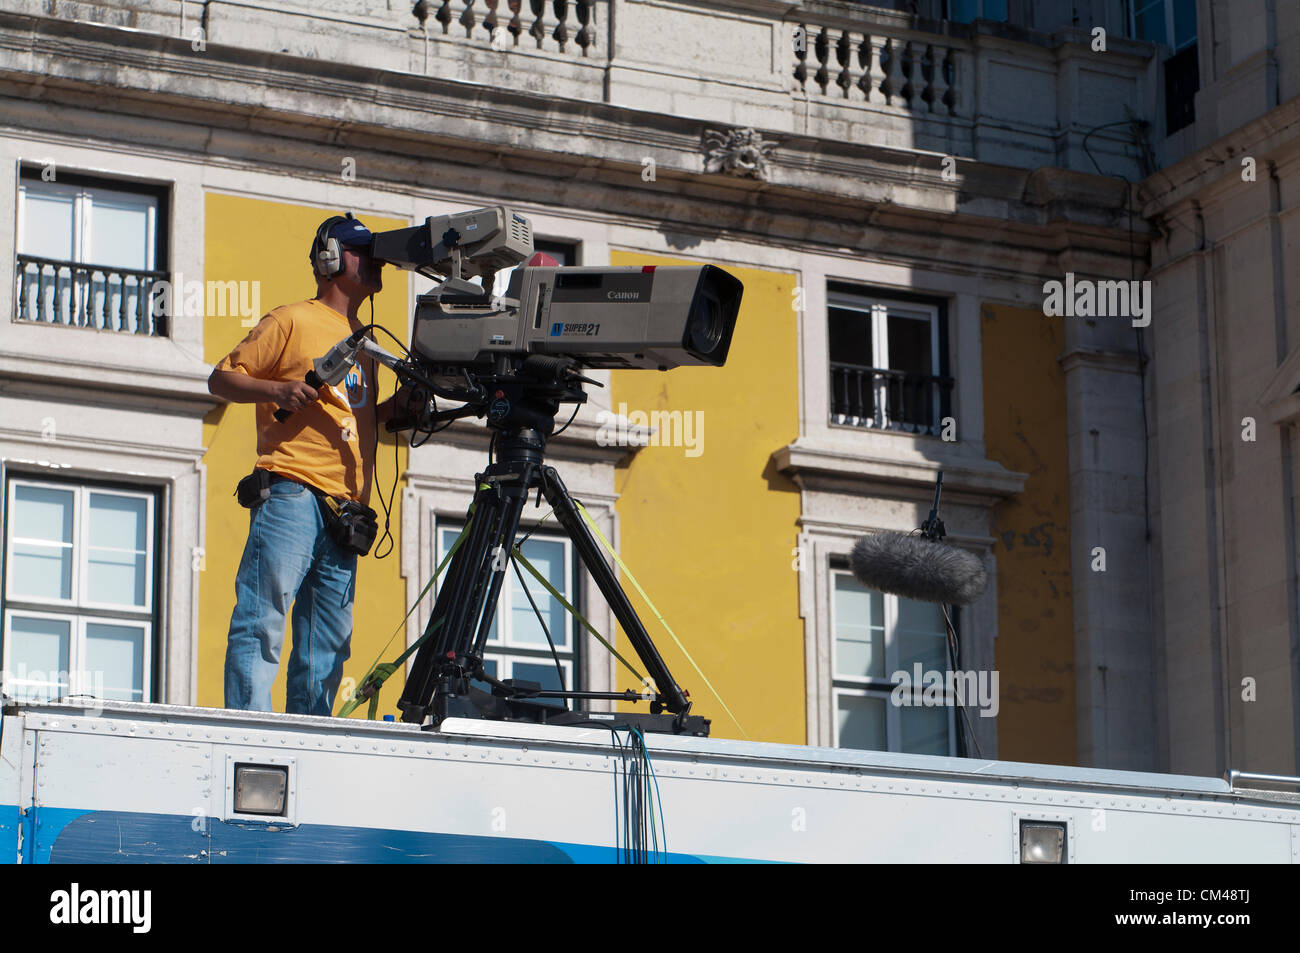 Cameraman on top of building covering the peaceful protest organised by the CGTP union gathers activists in Lisbon - Stock Image